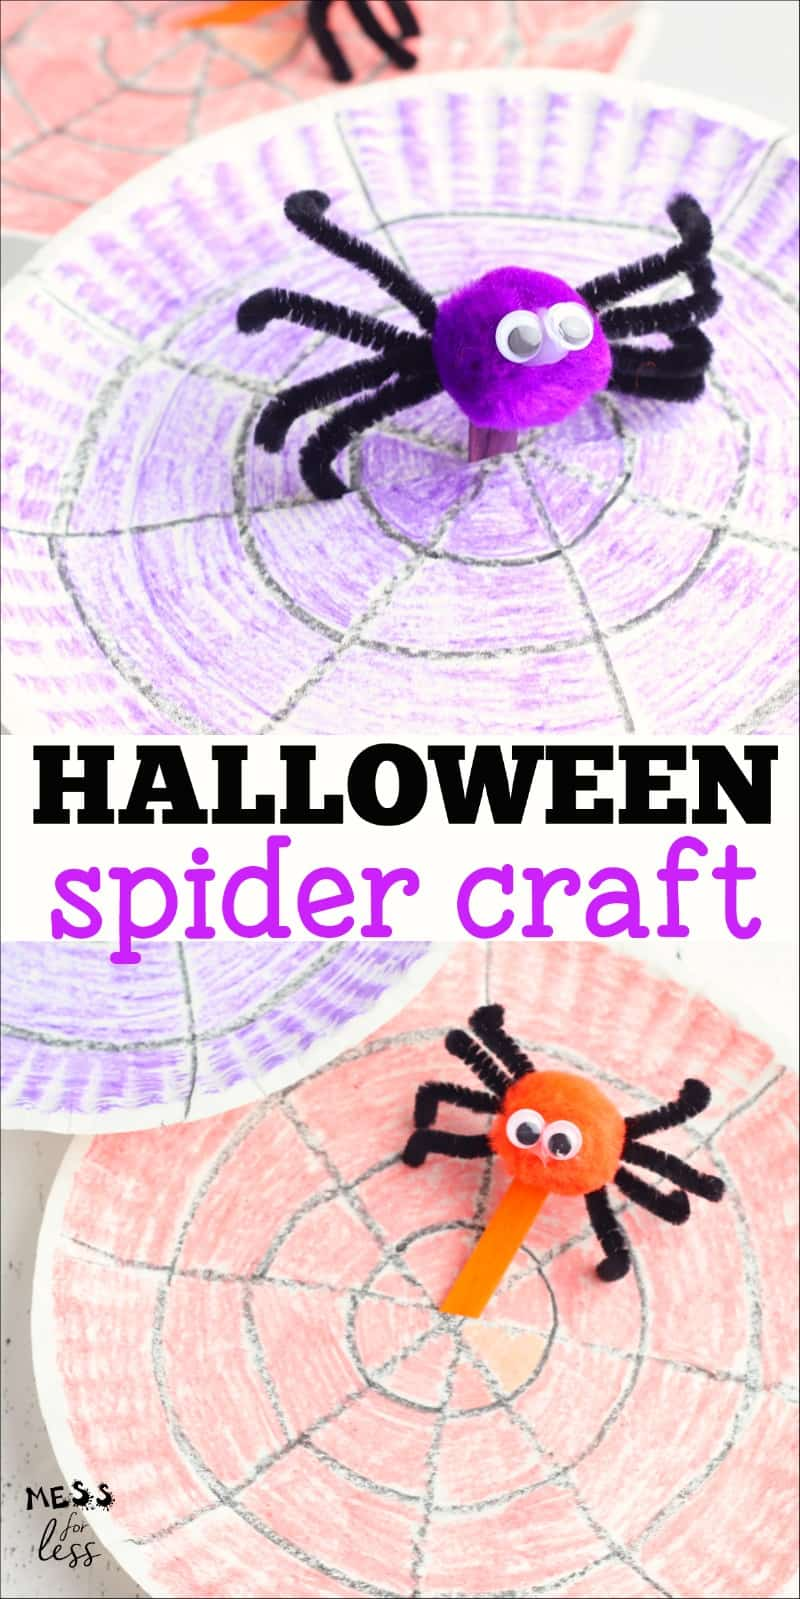 This adorable Spider Craft for Kids is perfect for Halloween. I love how it is a craft that kids can play with as they move the spider around on his web! #halloween #spidercraft #kidscraft #halloweencraft